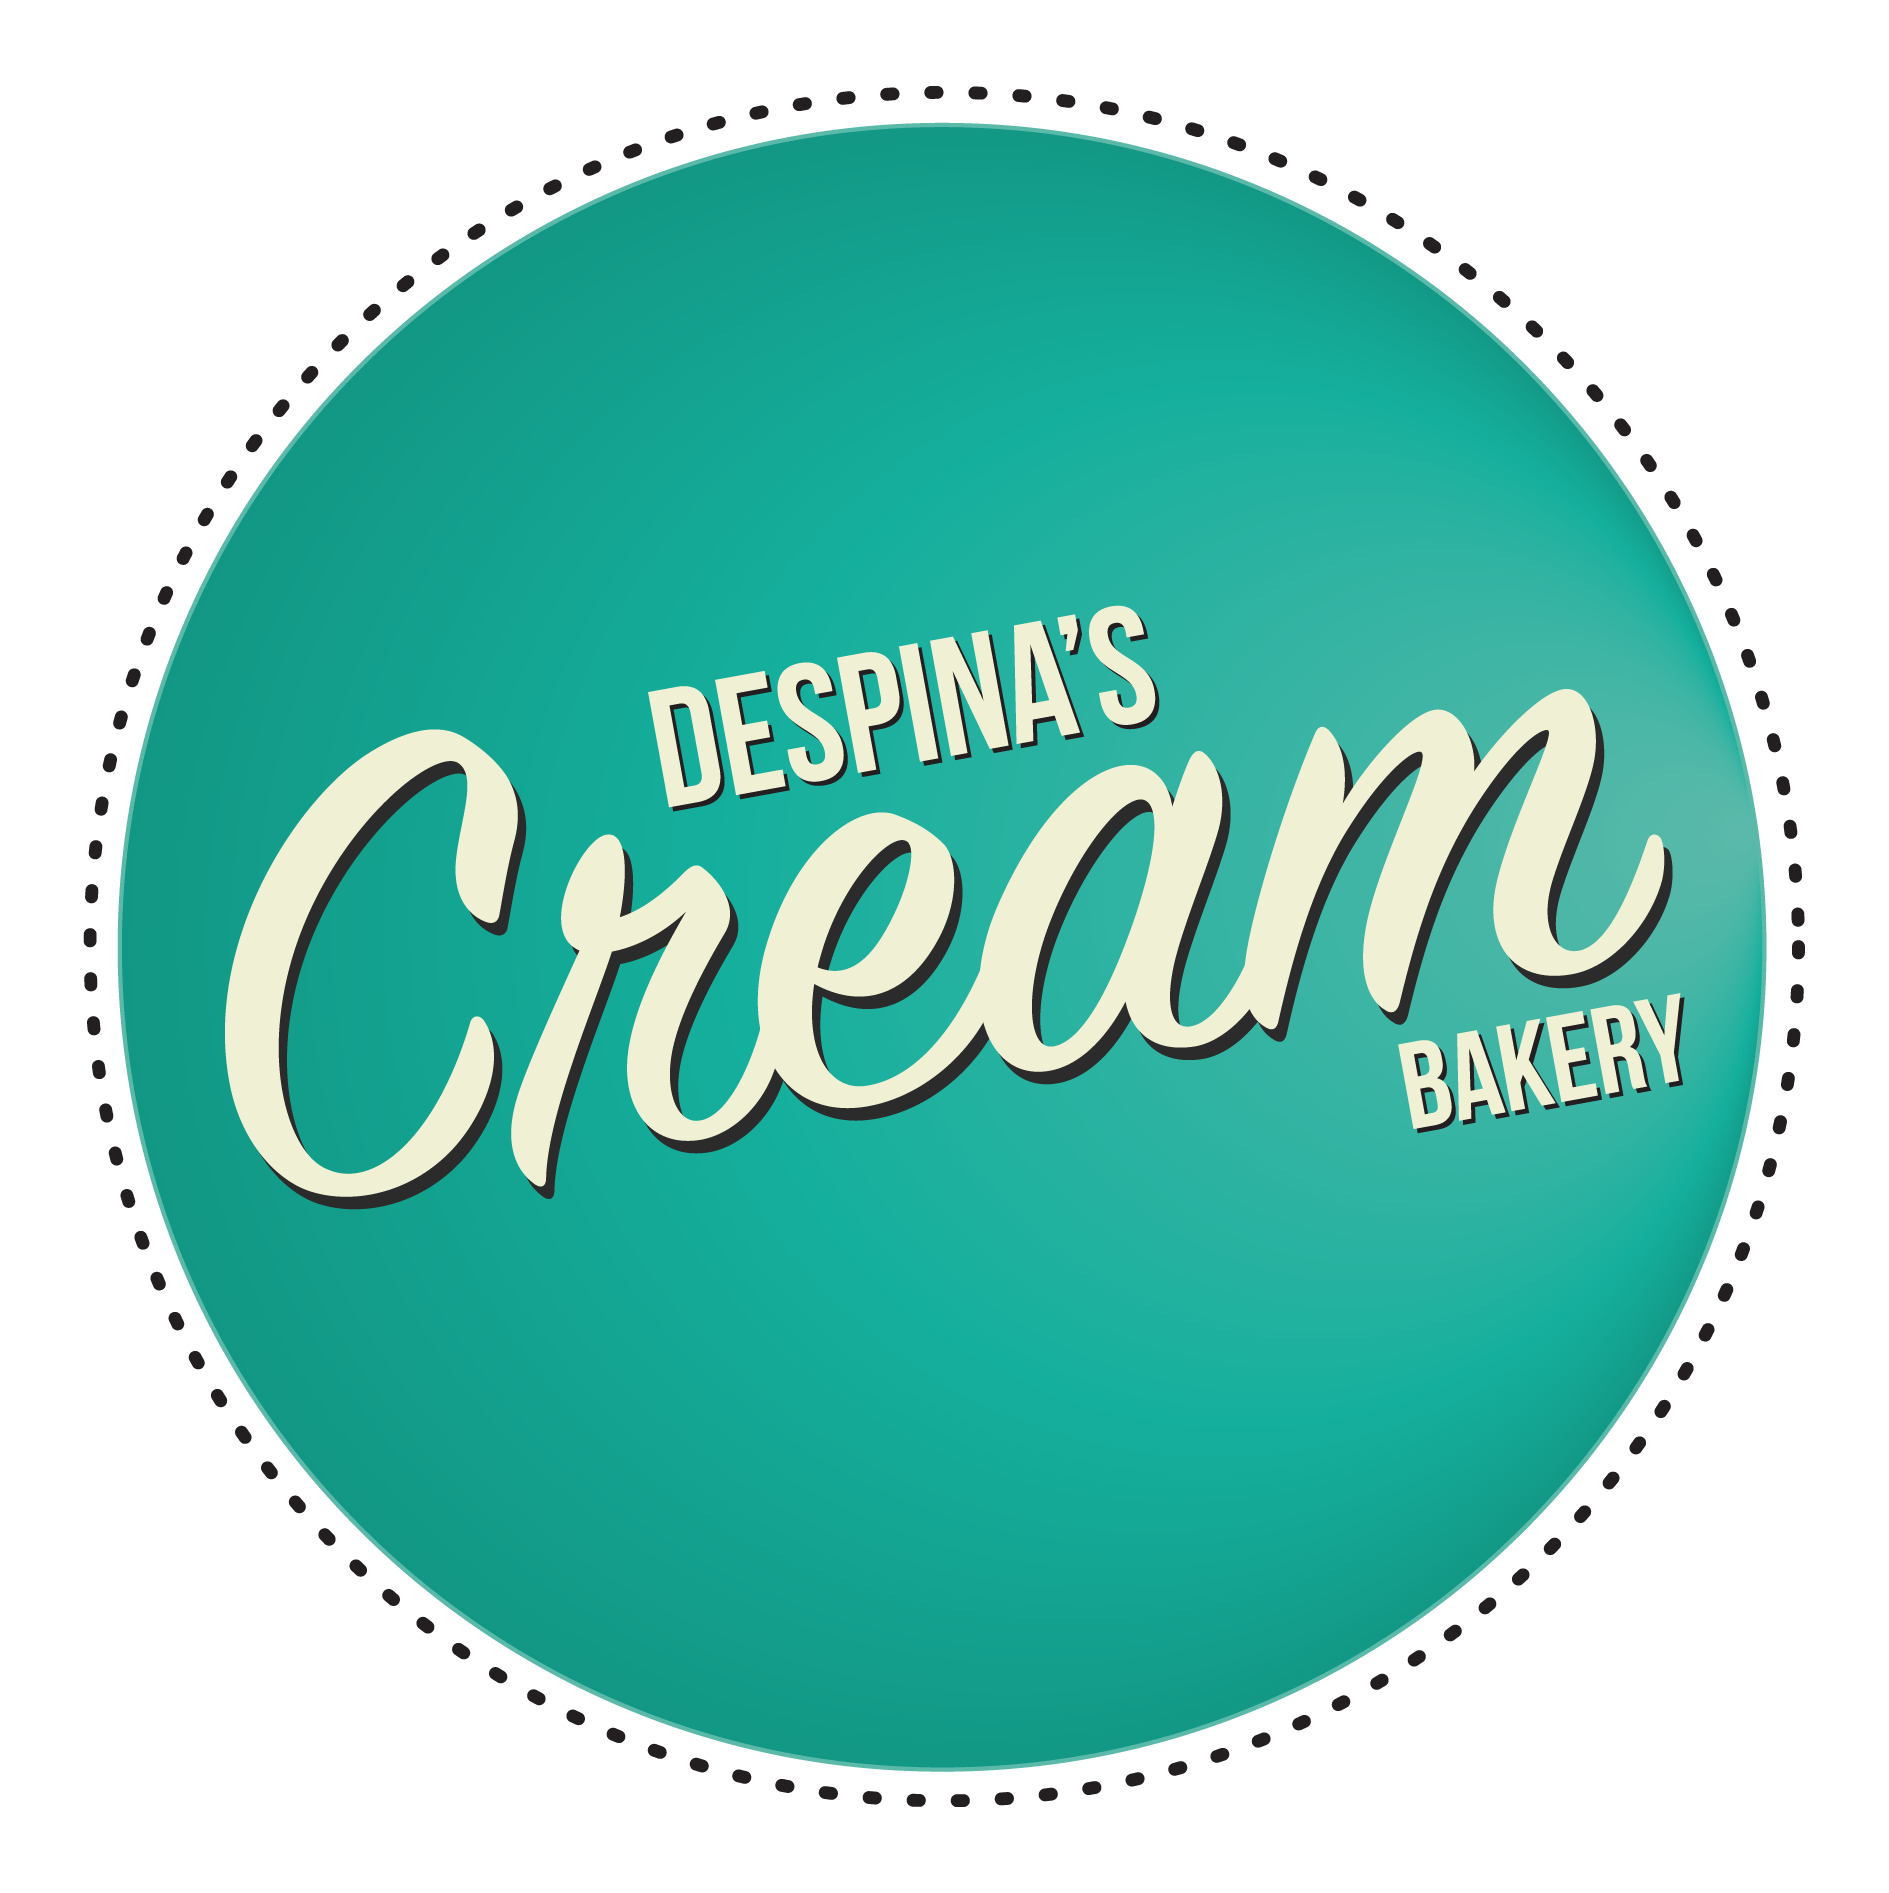 Despina's Cream Bakery